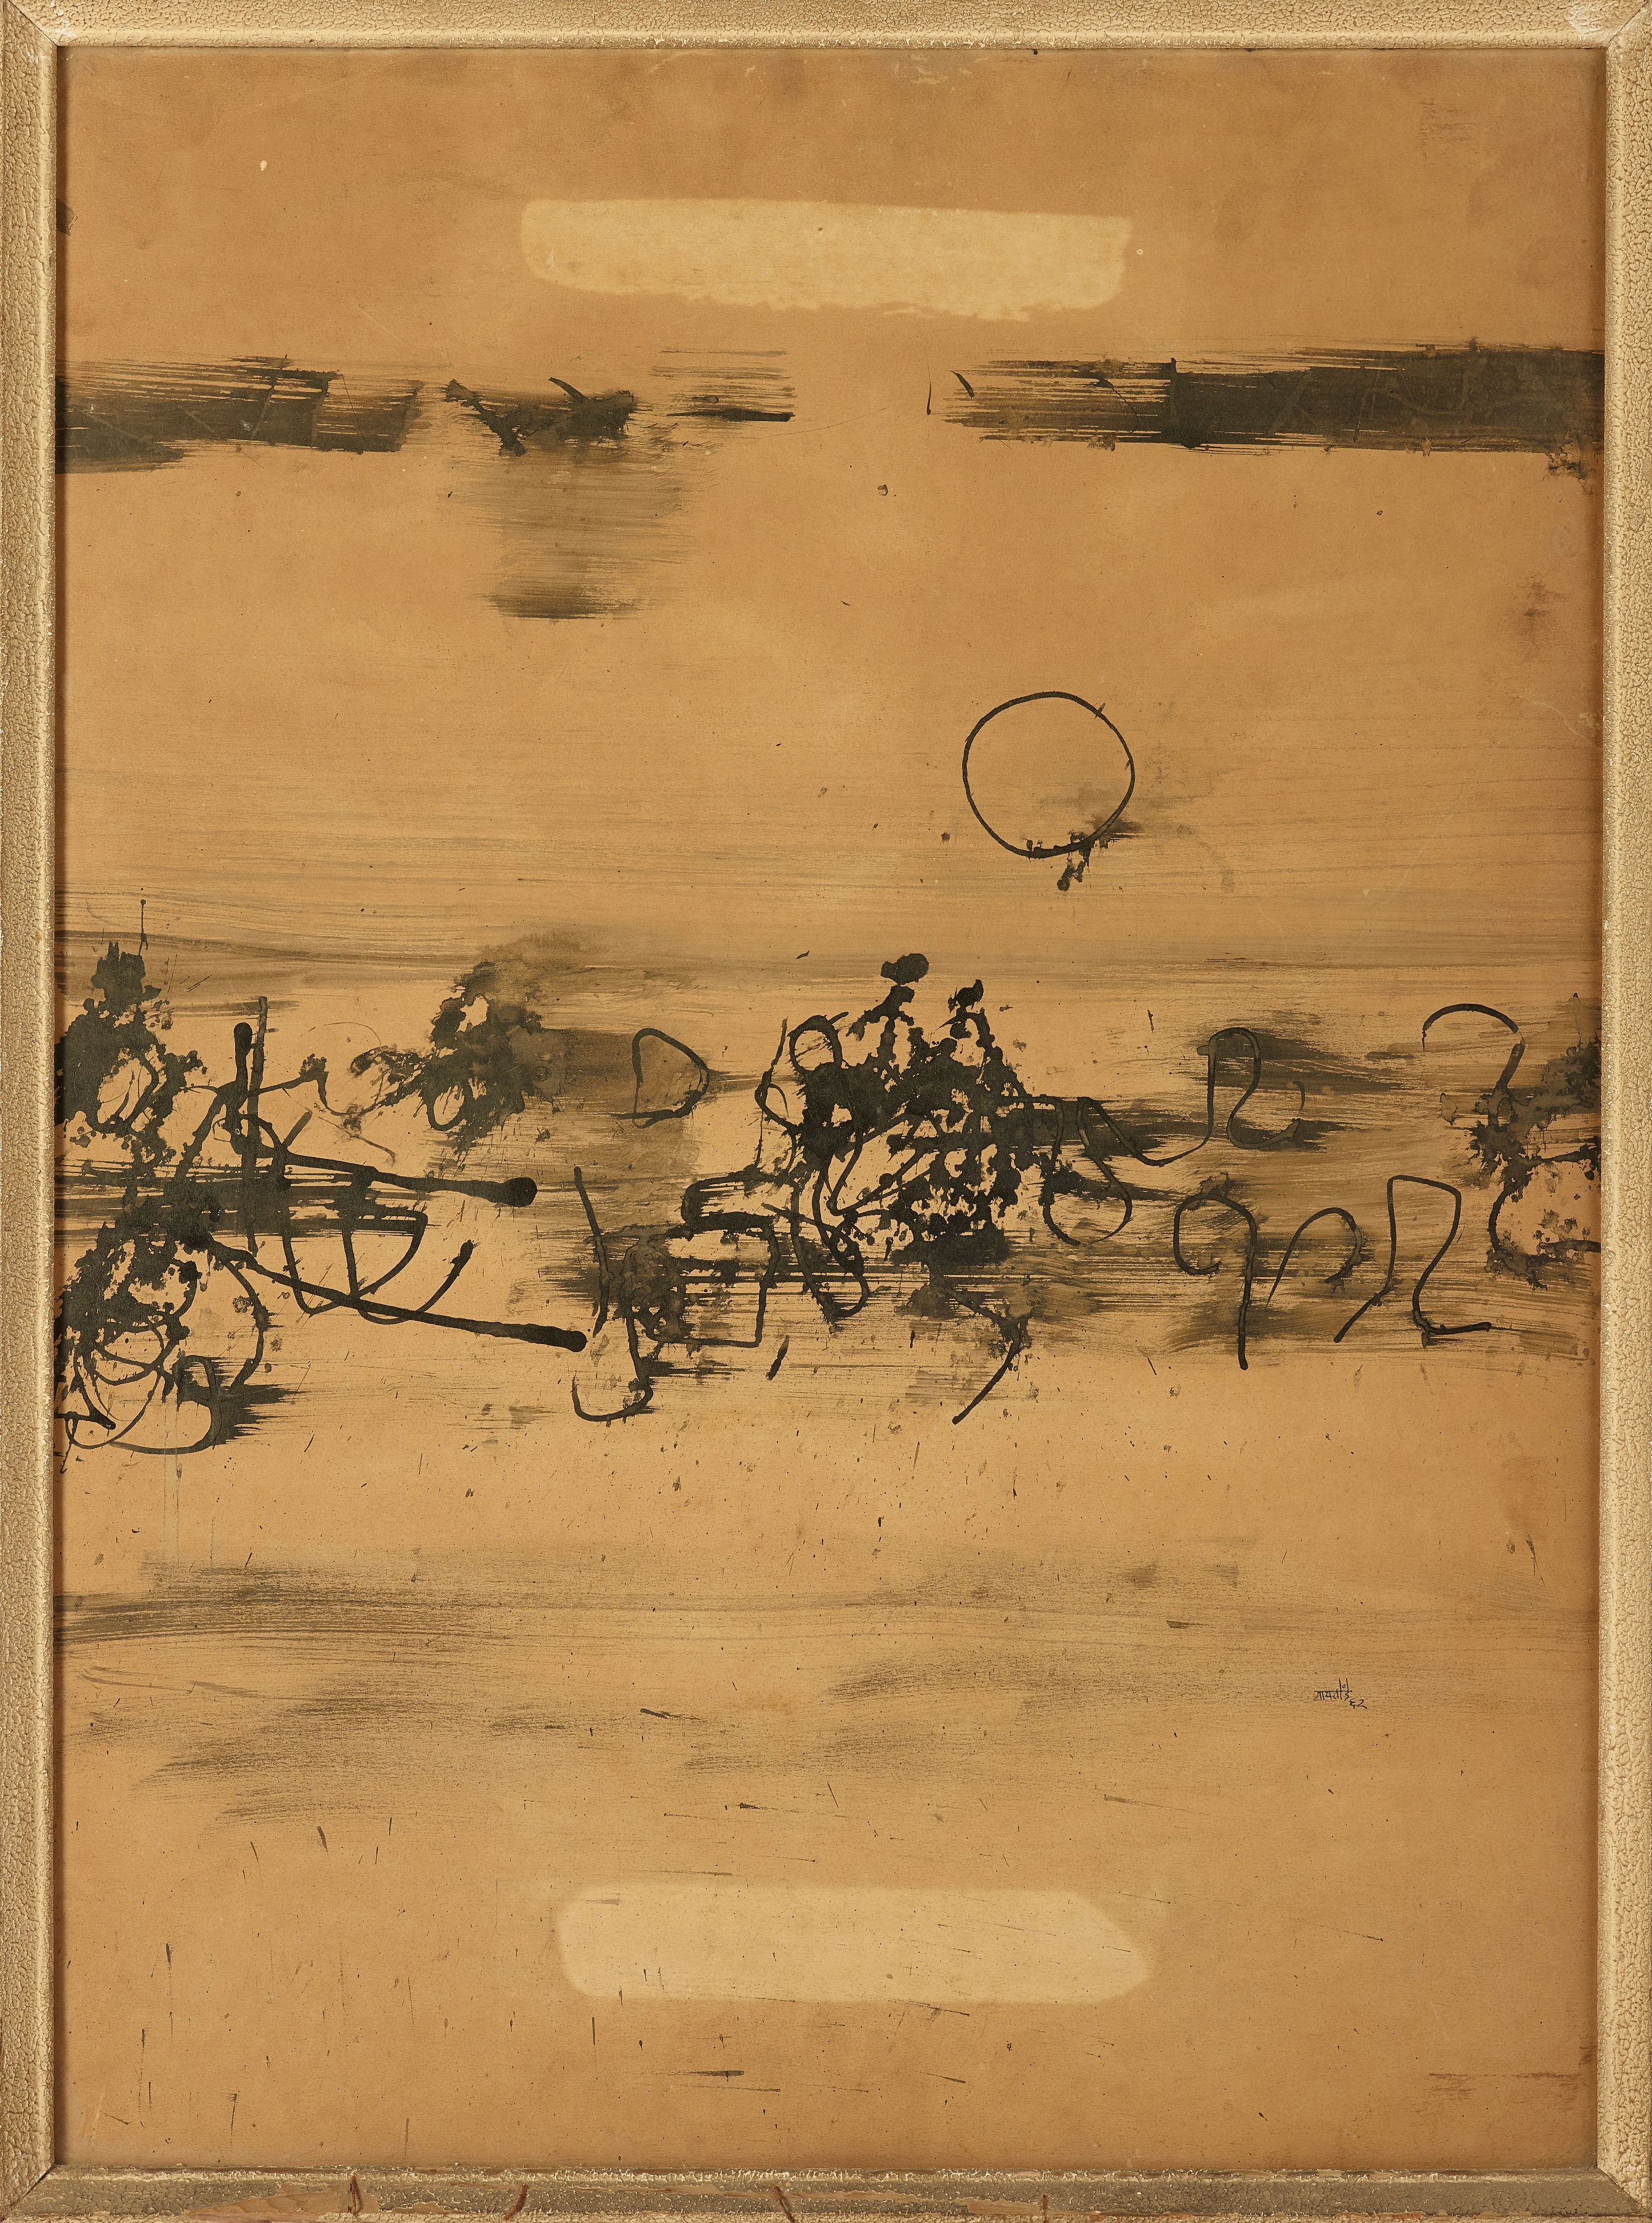 Vasudeo Gaitonde's Untitled (ink on paper), estimated at Rs 1.30 crore to Rs 1.80 crore did not sell